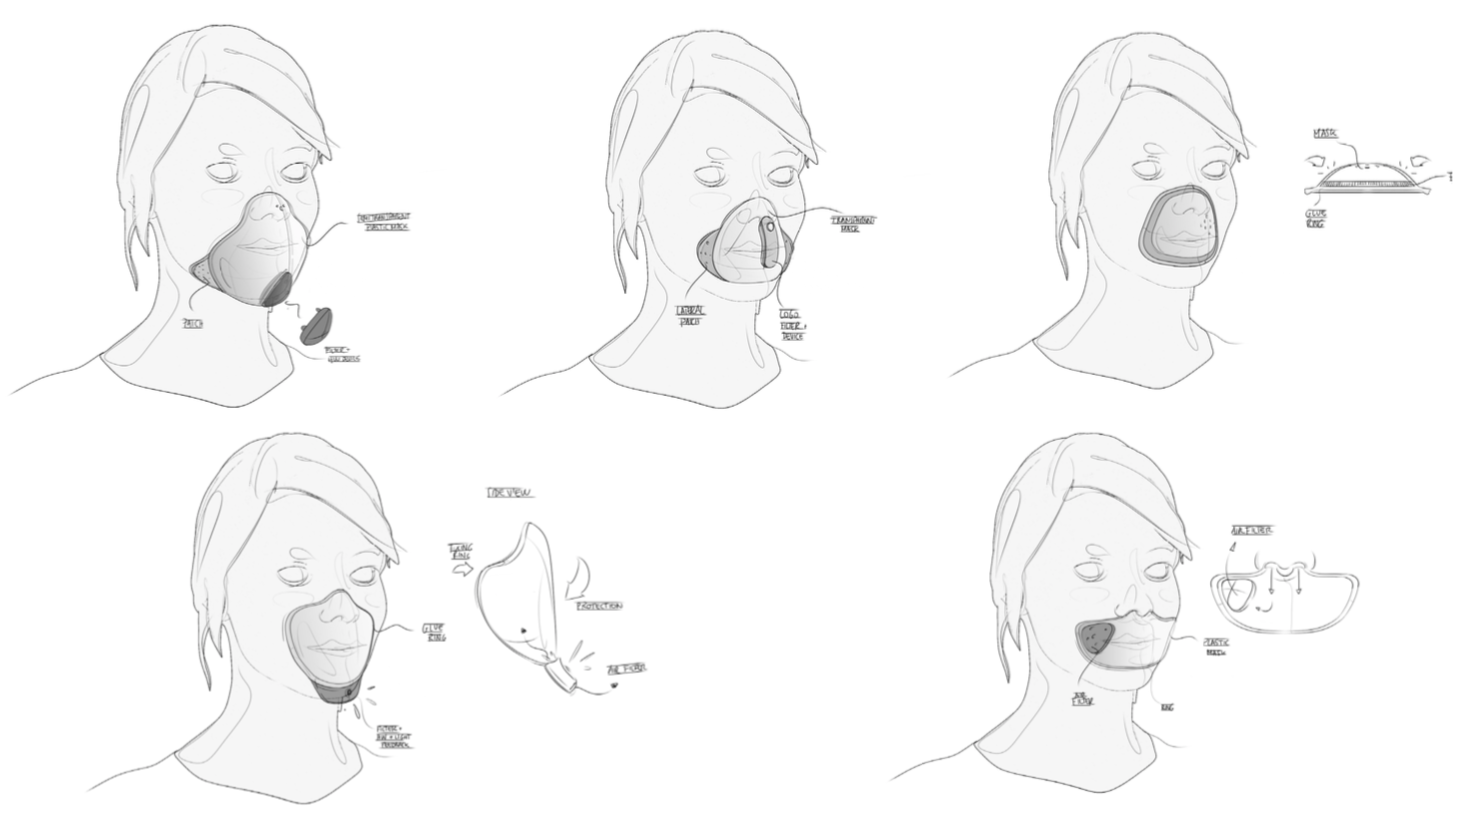 Facemask sketches